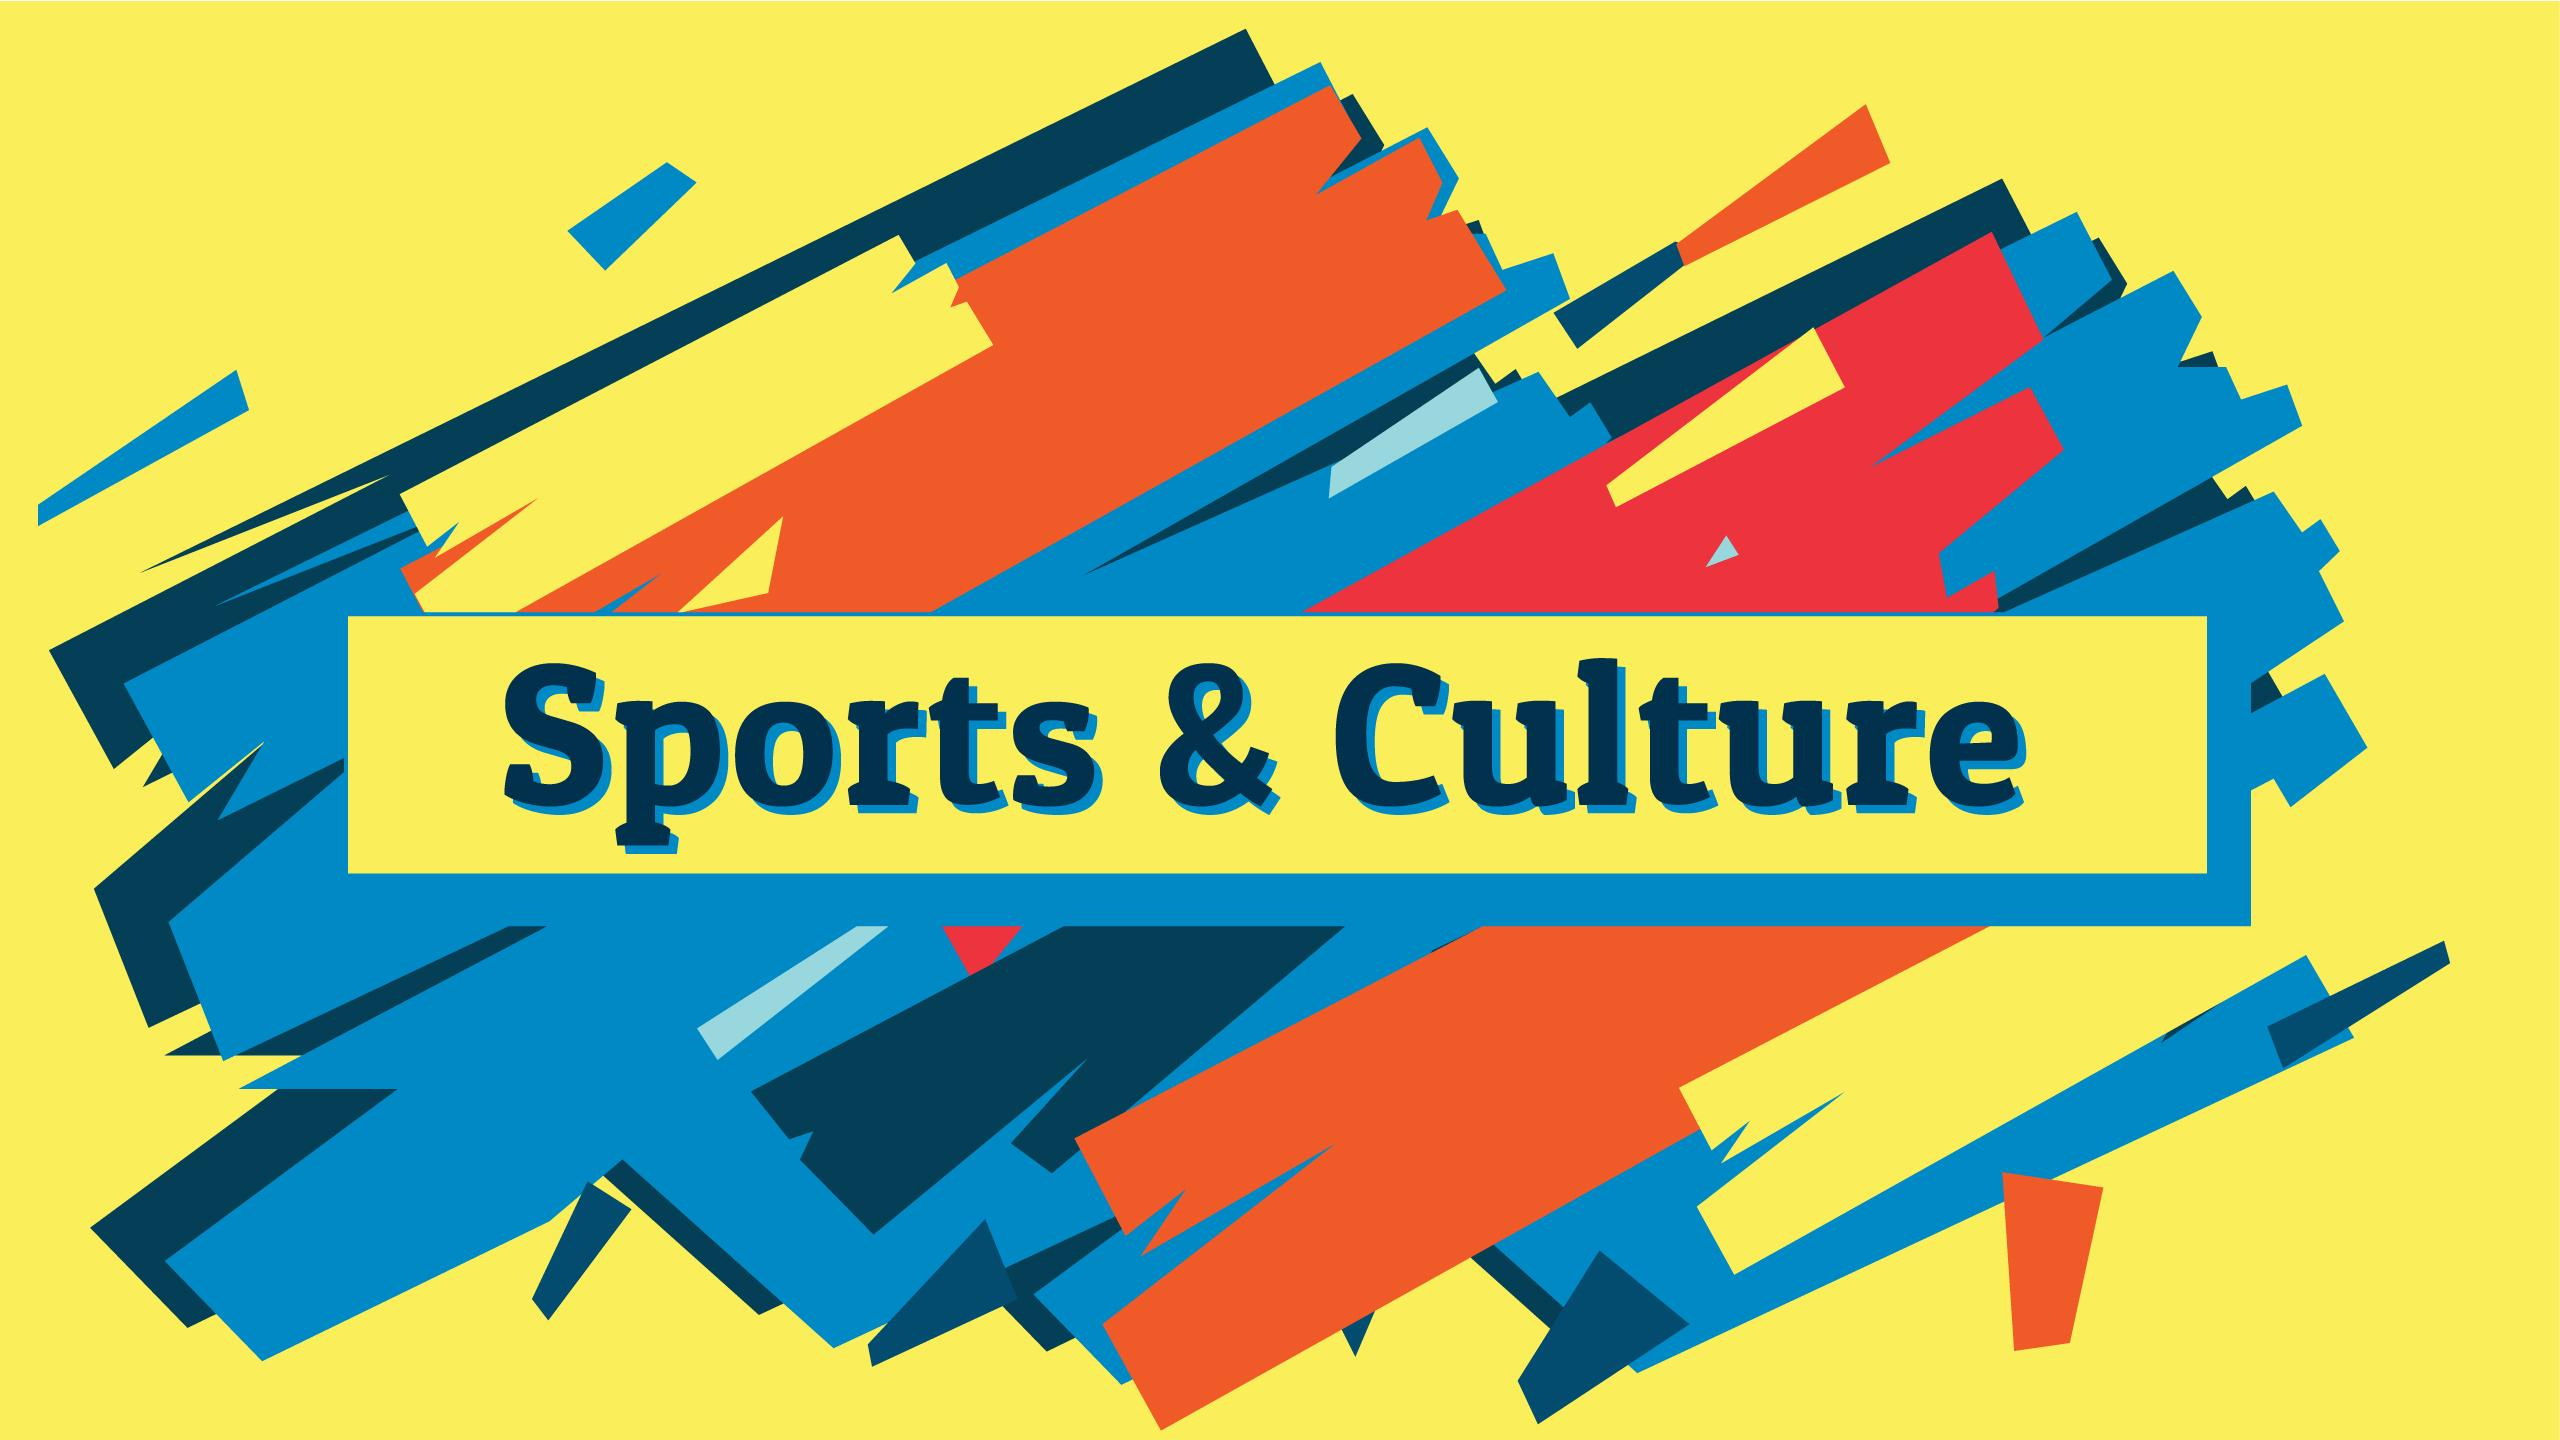 The image says Sports & Culture with red, yellow, orange and blue paint strokes behind it.